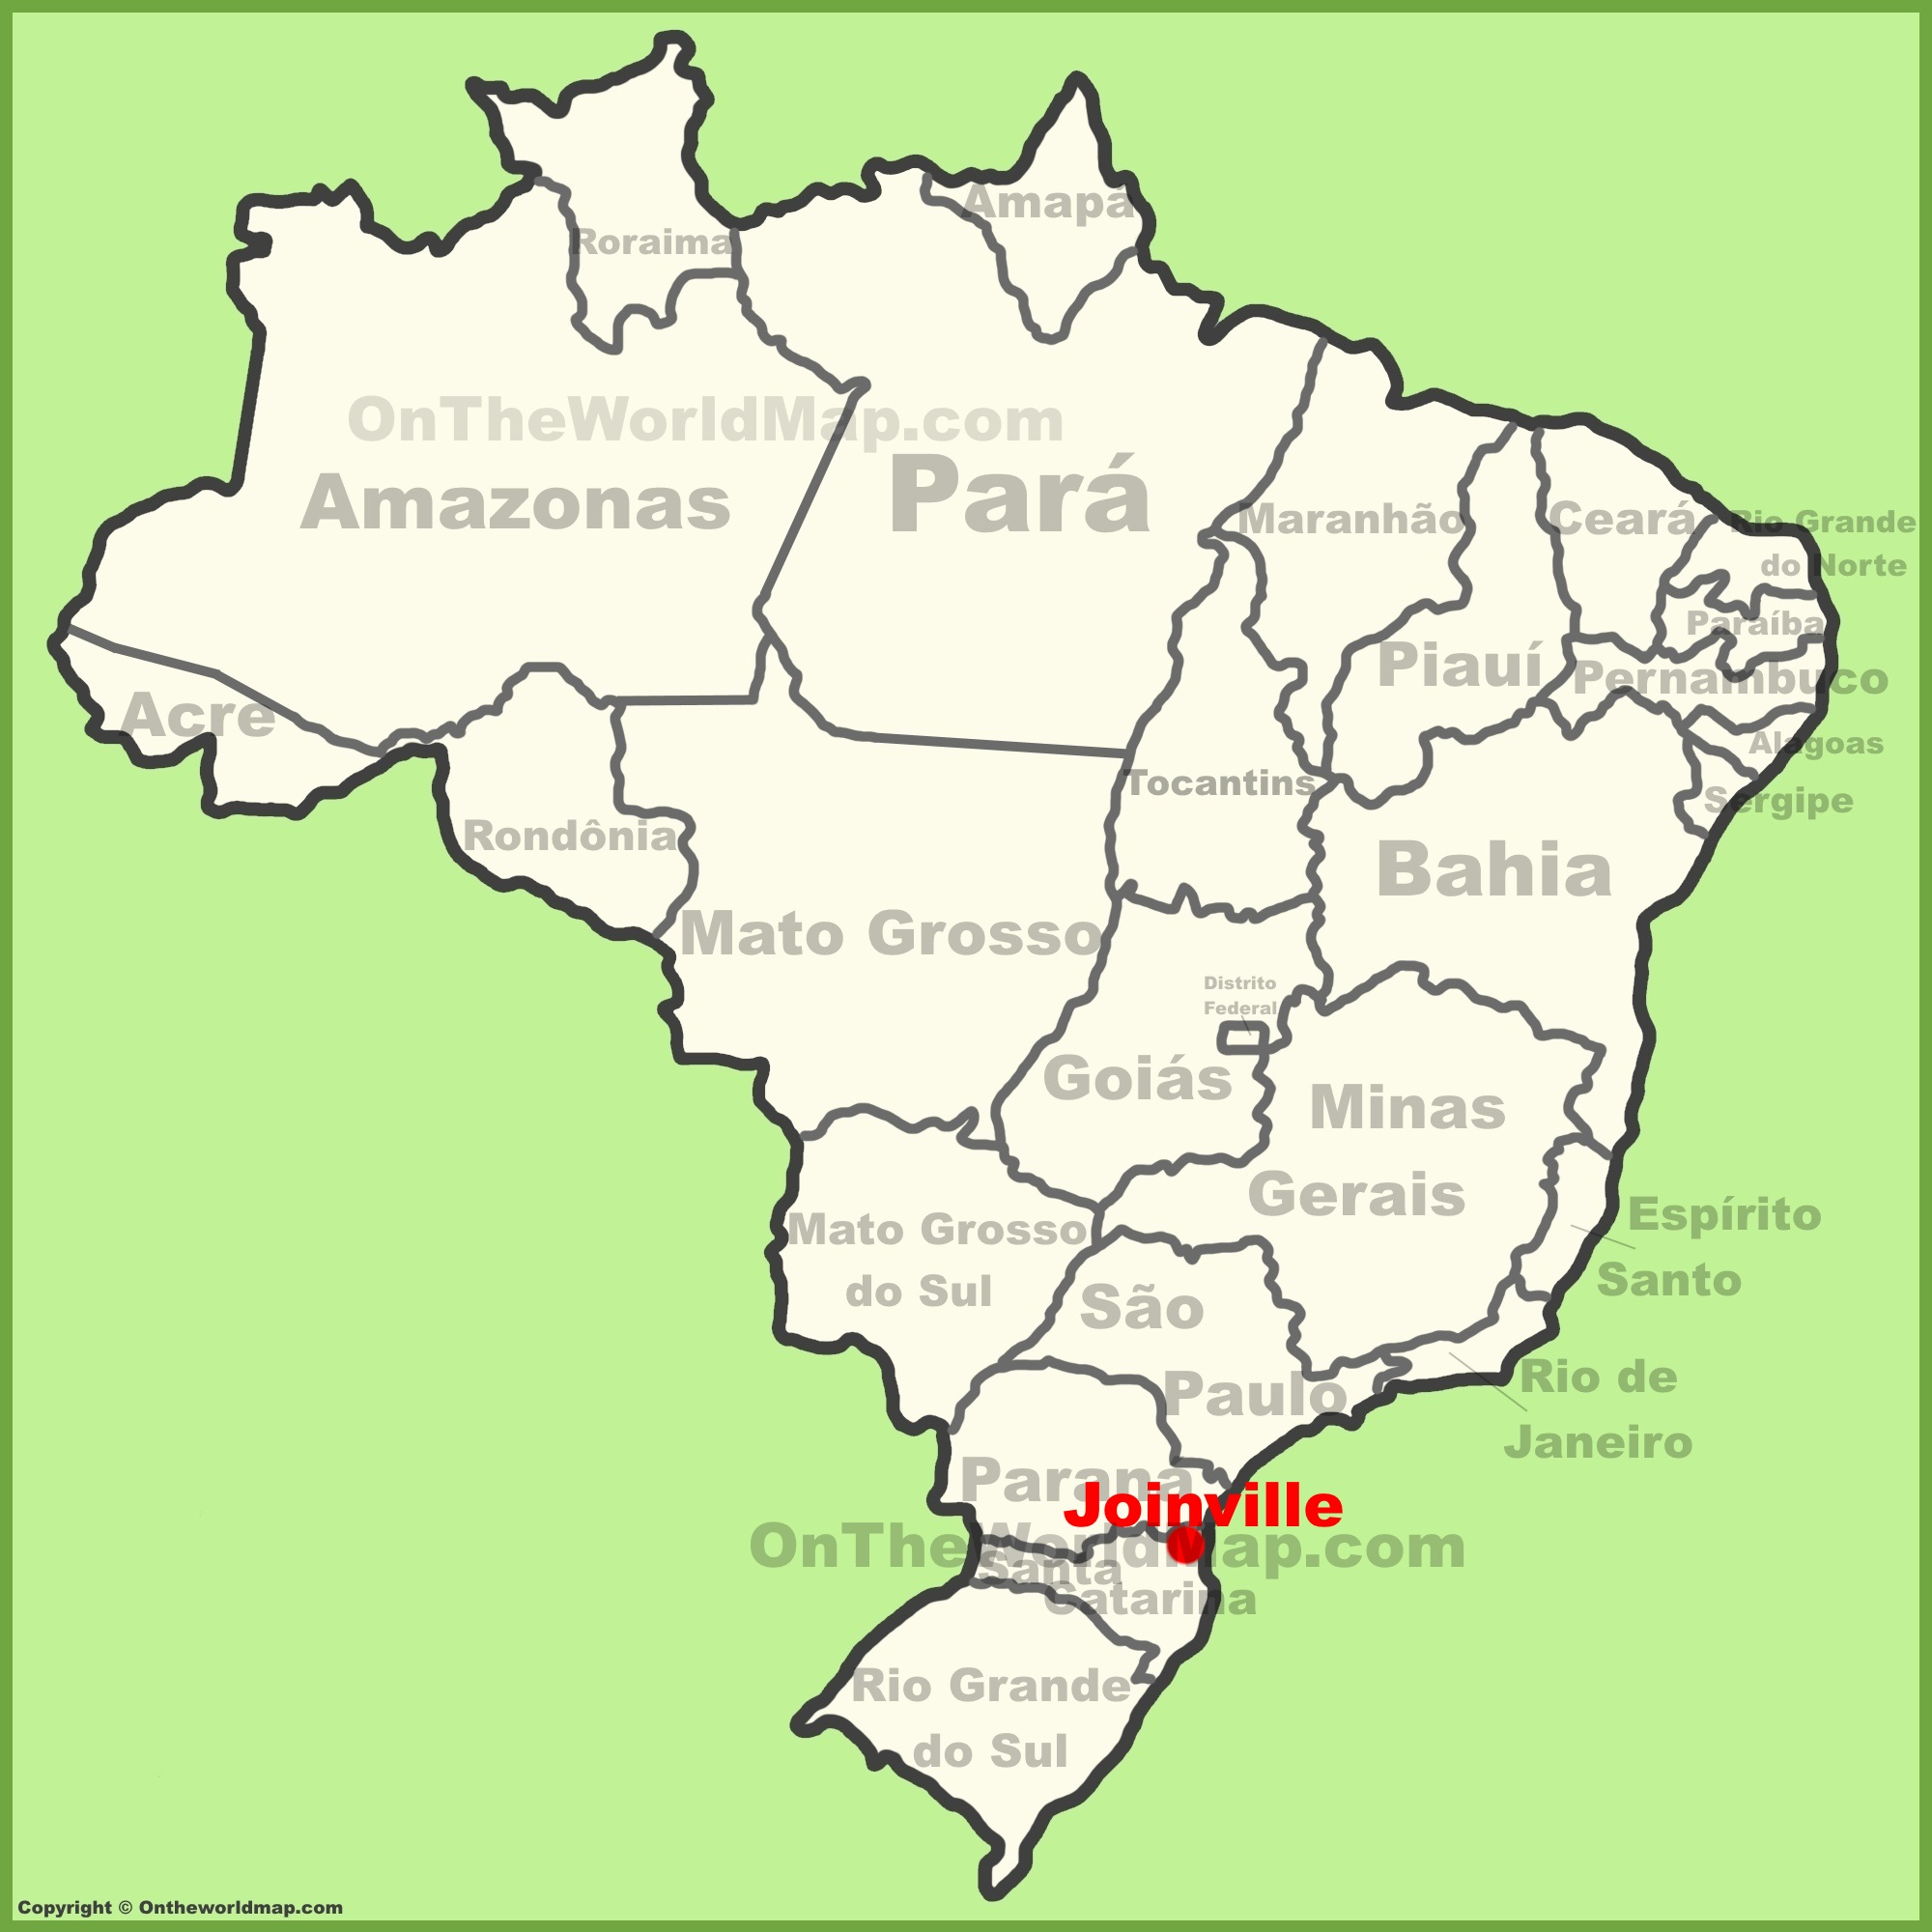 Joinville location on the Brazil map